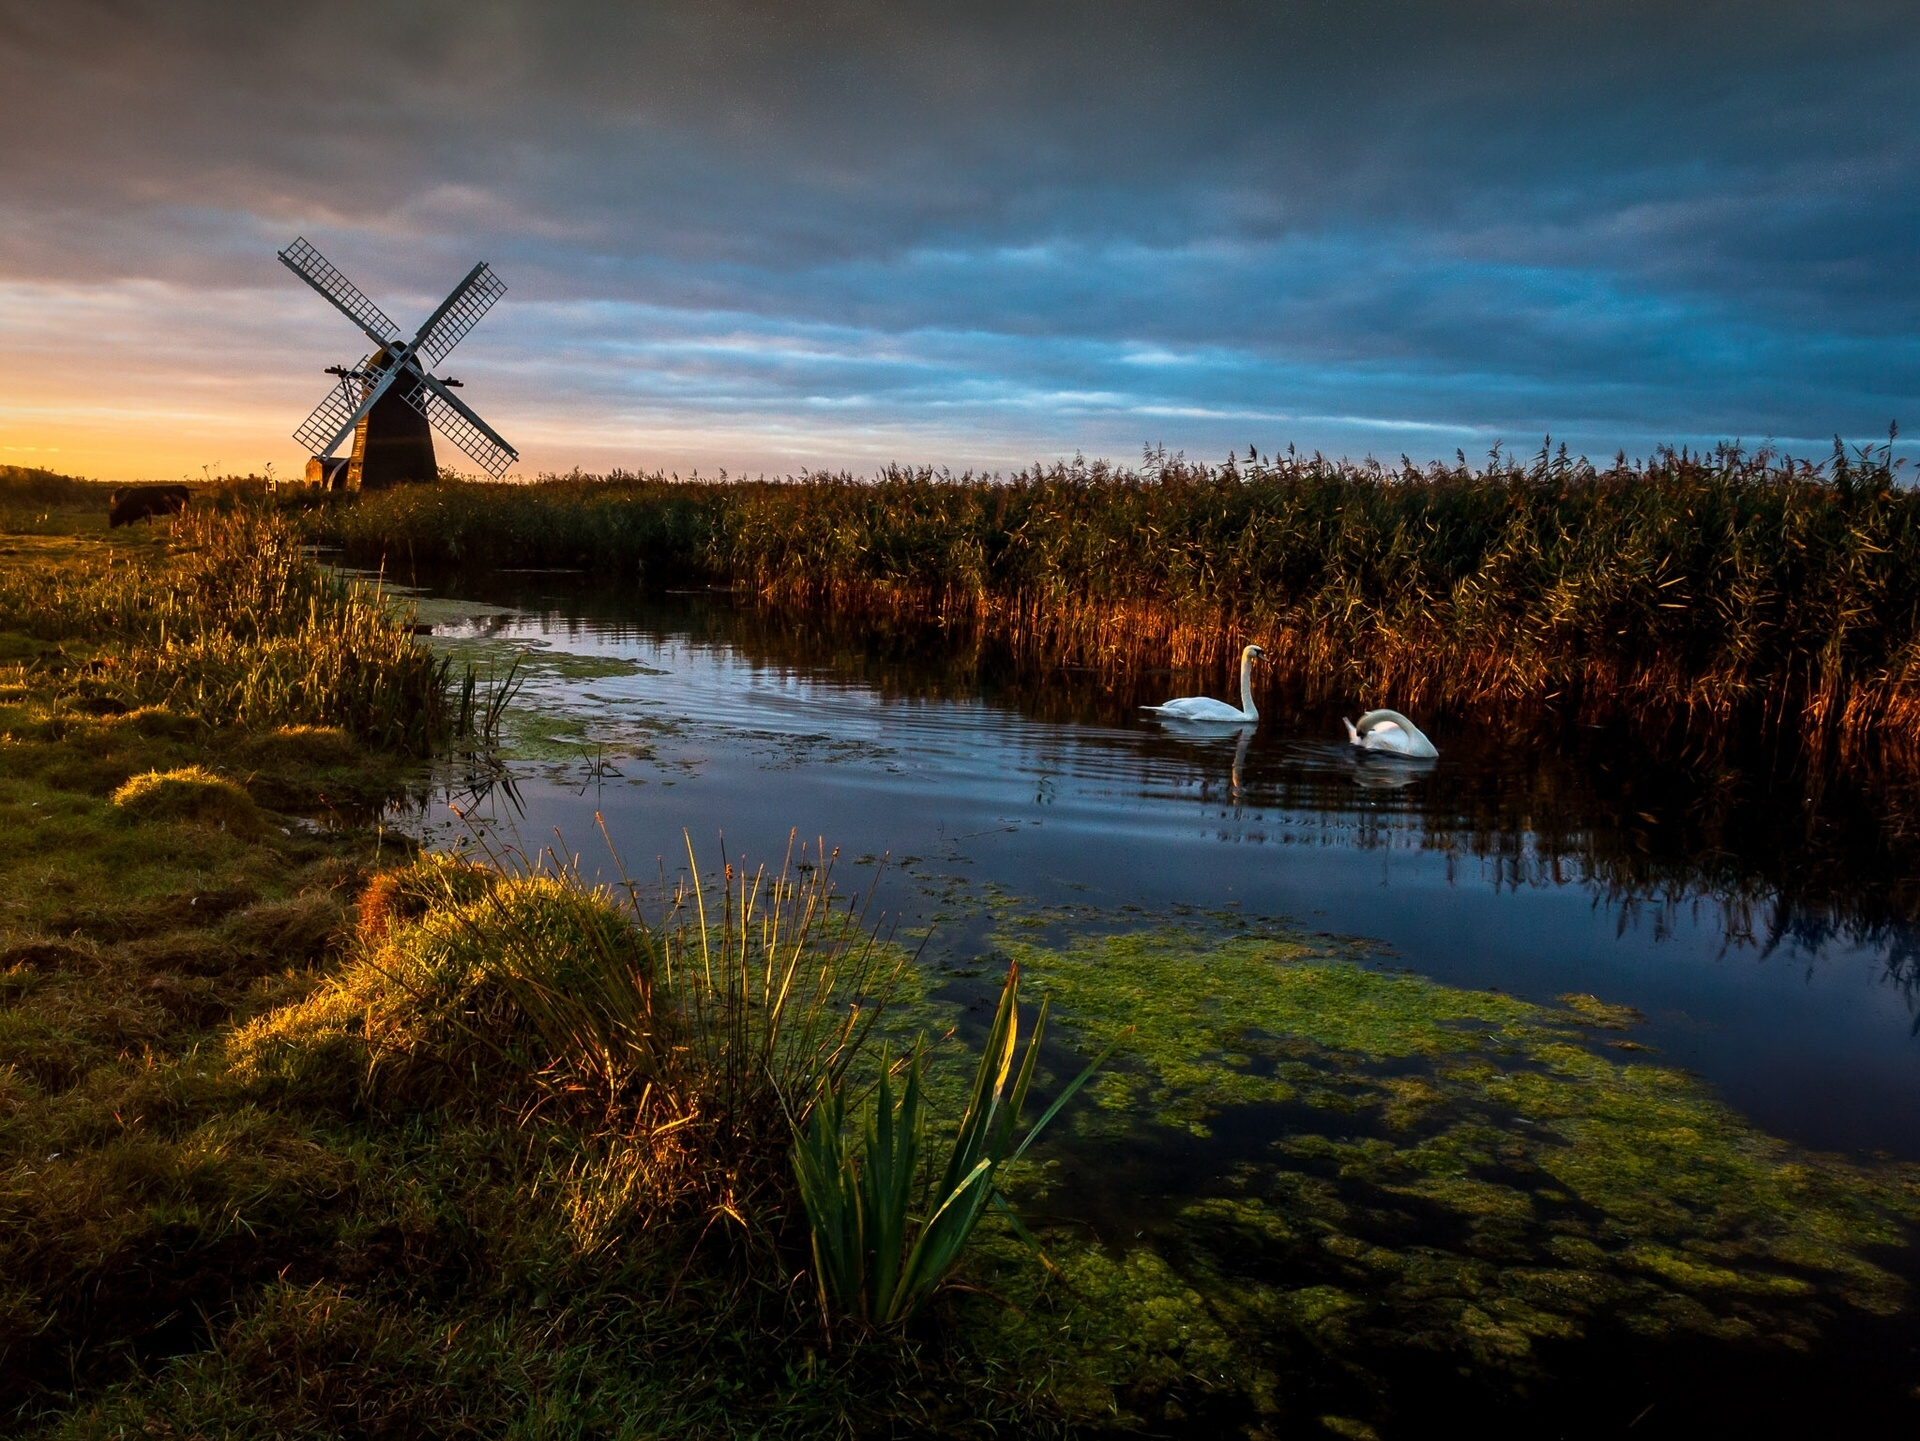 England_mill_swans_river_reeds_1920x1441